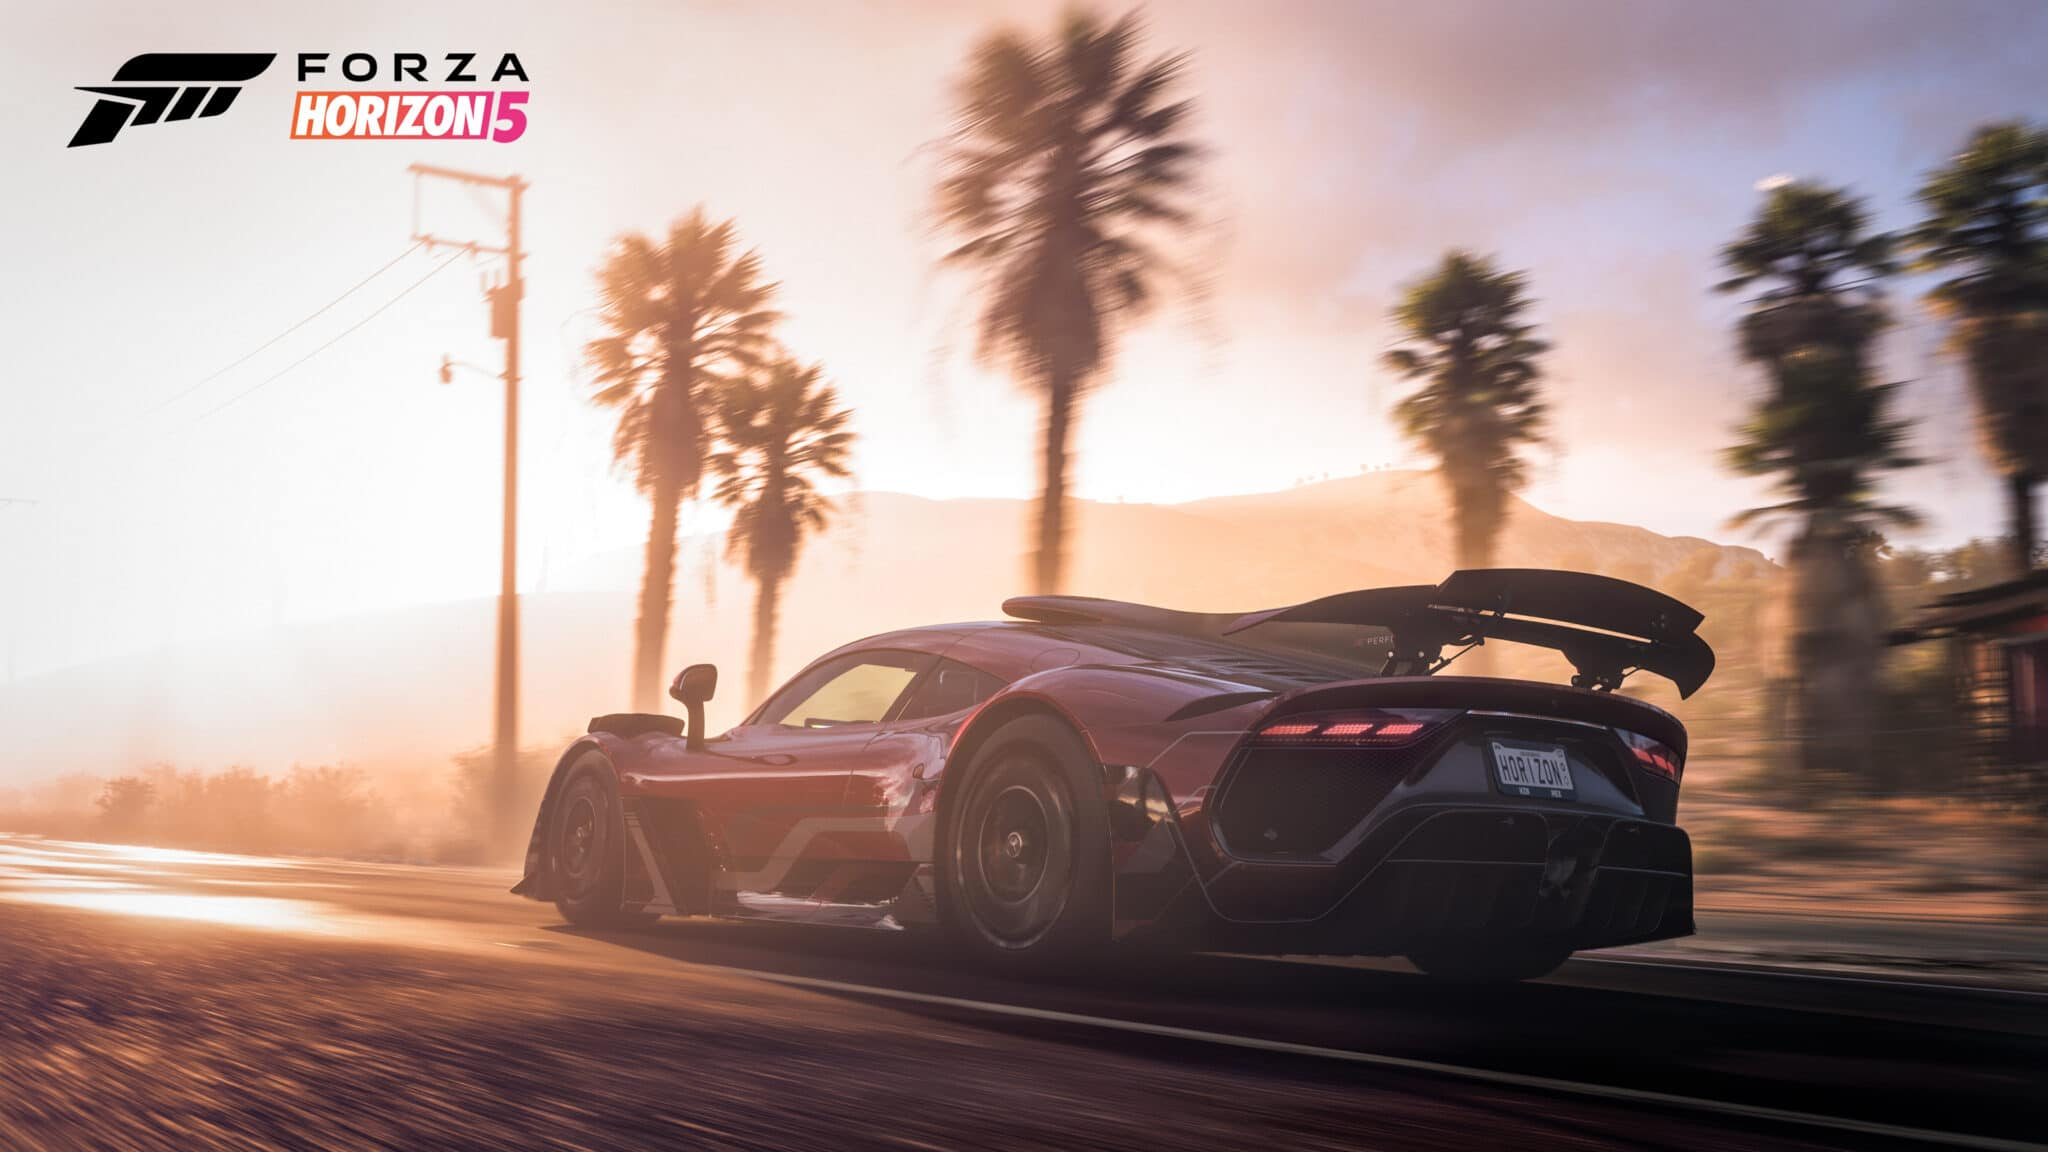 'Diverse' Forza Horizon 5 will add pronouns to extensive character customisation